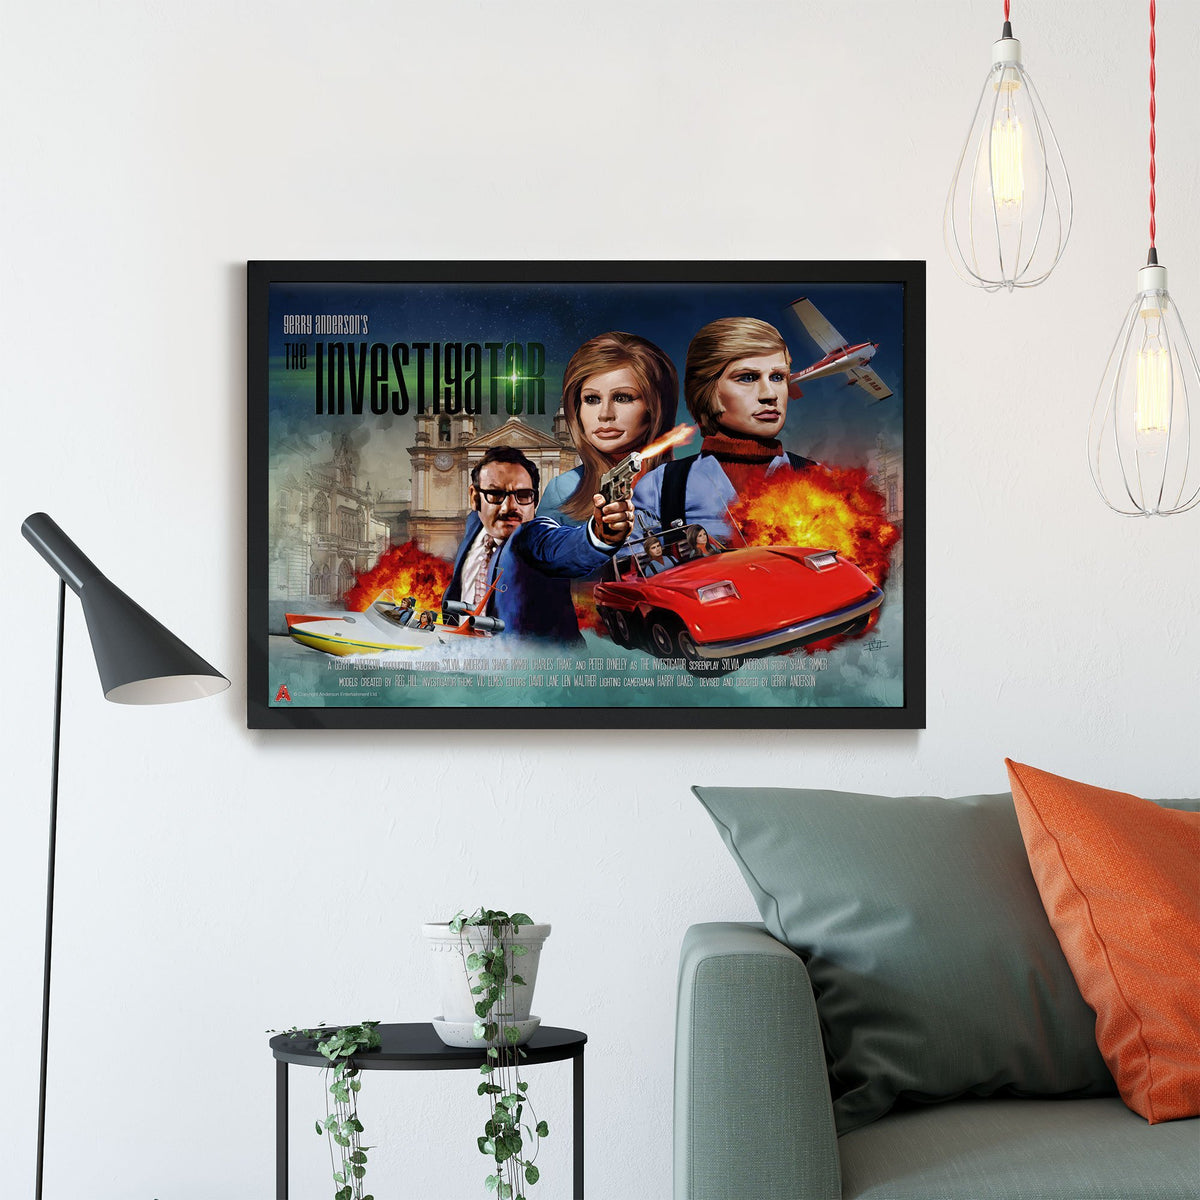 The Investigator Framed Print [Official and Exclusive] - The Gerry Anderson Store